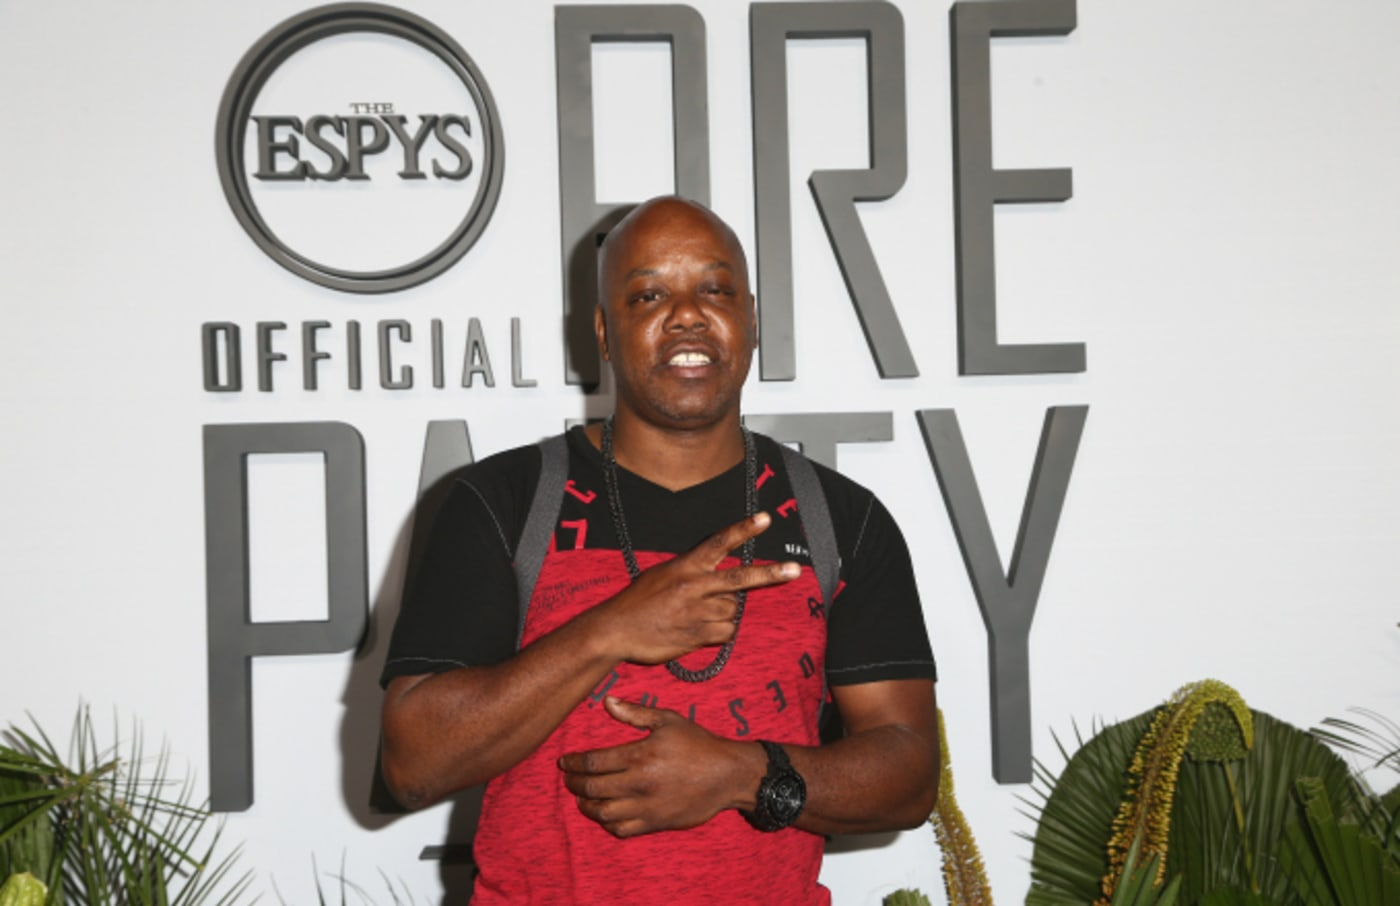 Too Short attends the ESPN's The ESPYS Official Pre Party